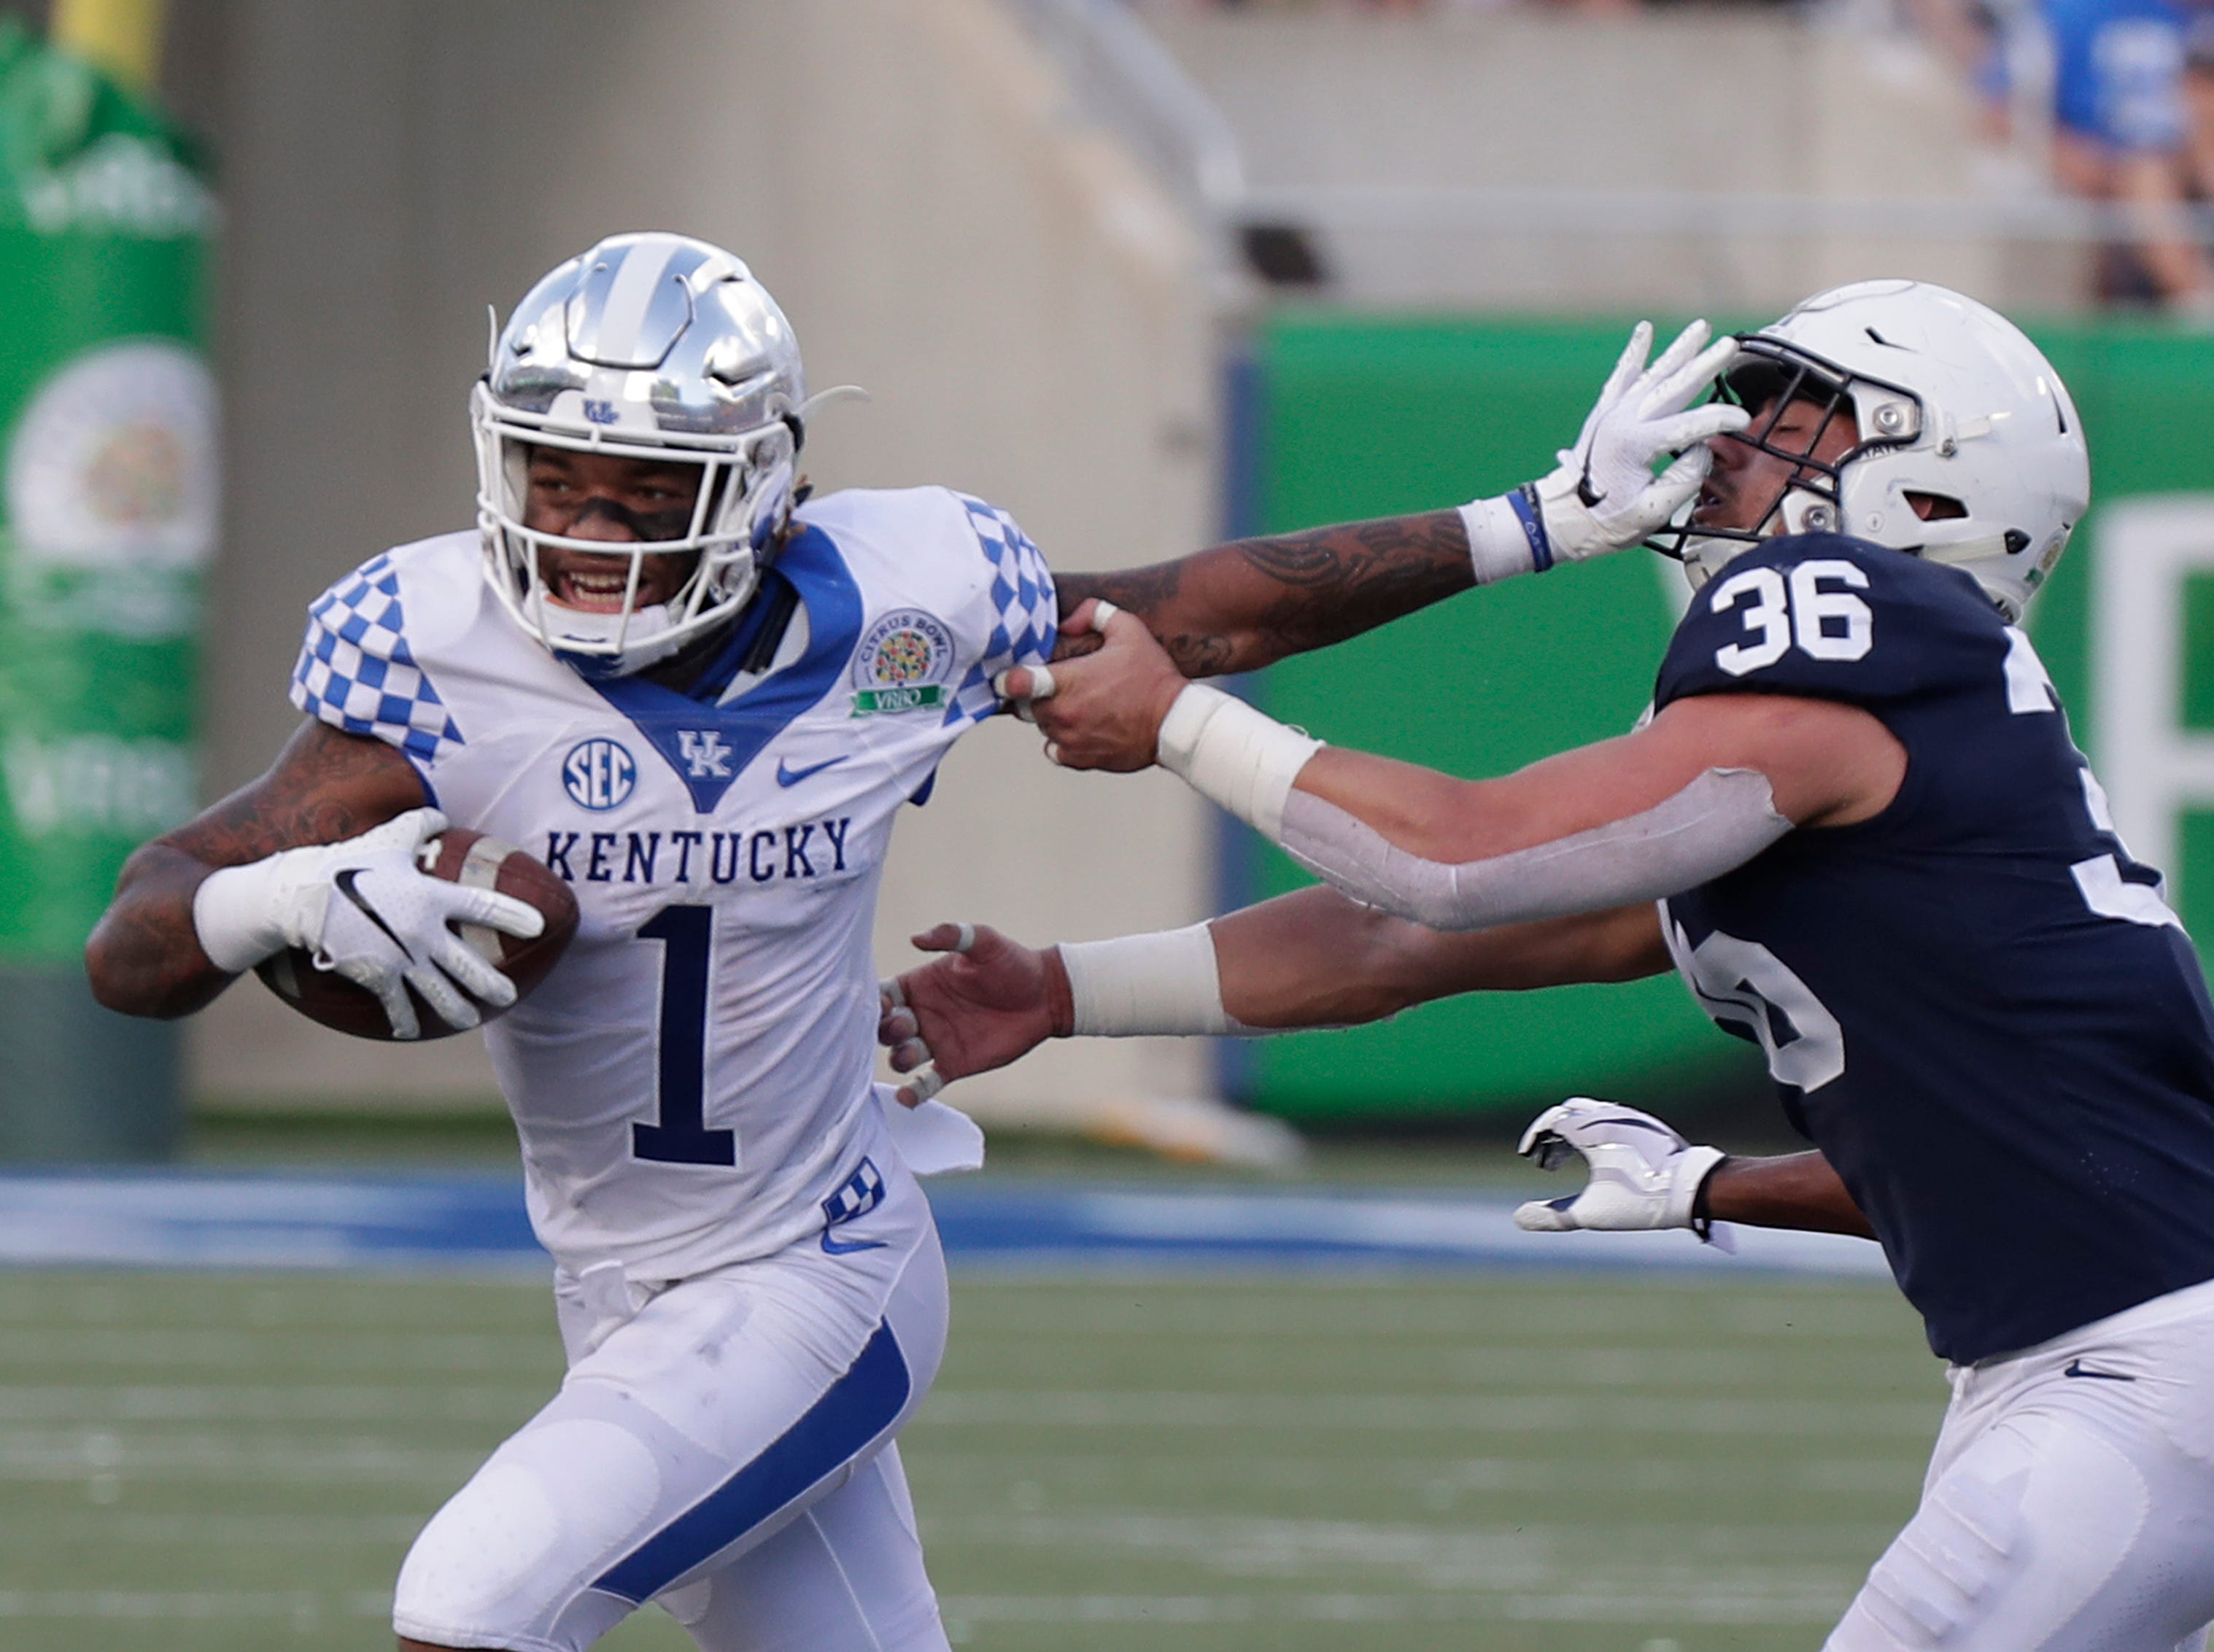 Kentucky wide receiver Lynn Bowden Jr. (1) tries to get past Penn State linebacker Jan Johnson (36) during the second half of the Citrus Bowl NCAA college football game, Tuesday, Jan. 1, 2019, in Orlando, Fla. (AP Photo/John Raoux)